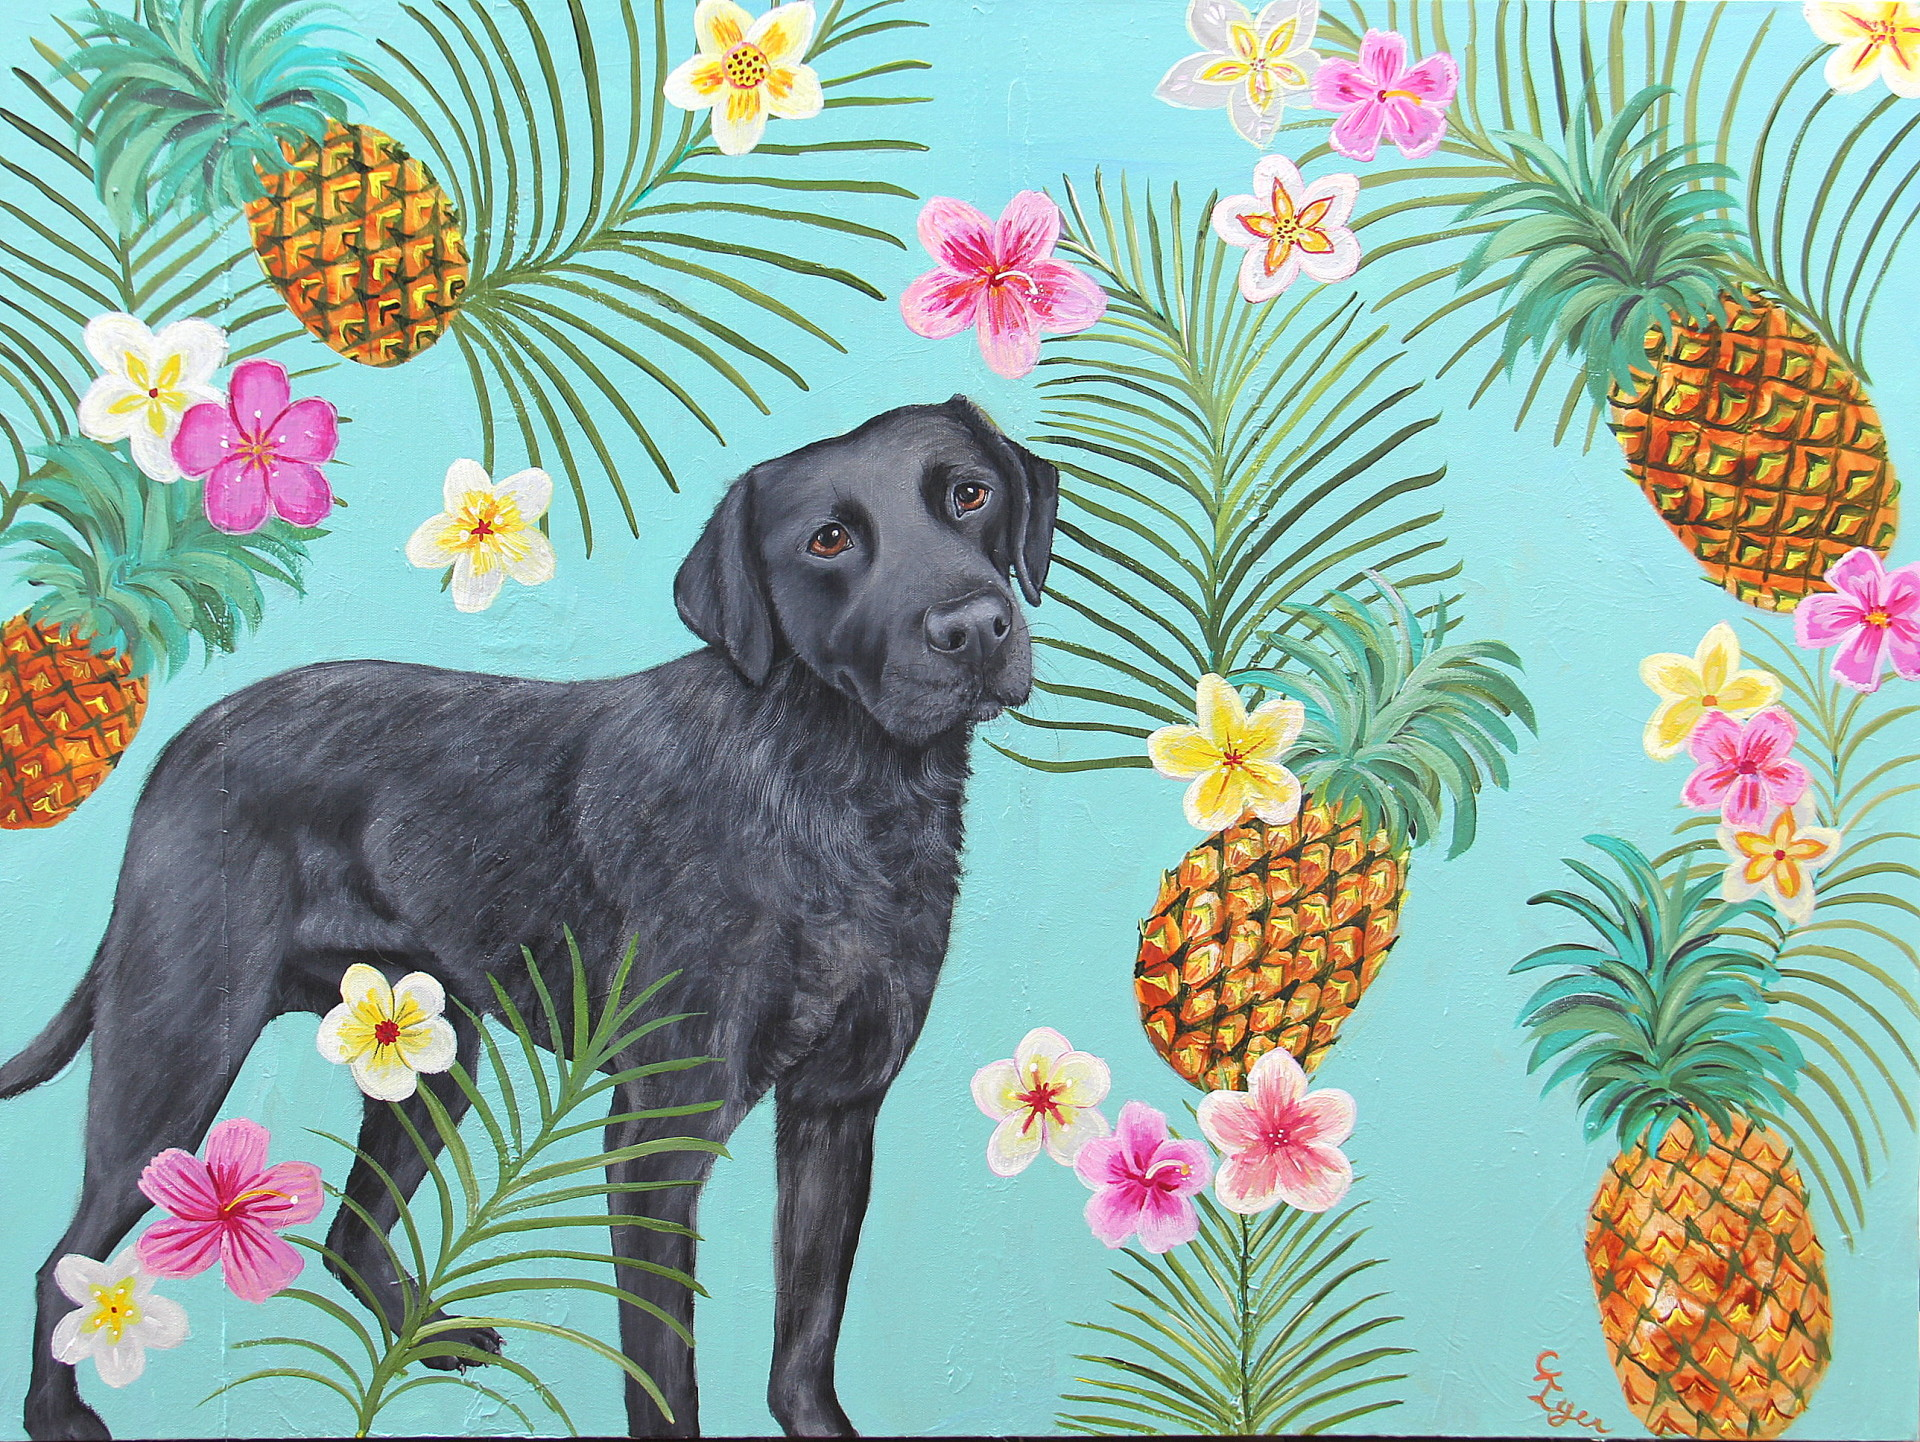 Large Lab and Pineapples